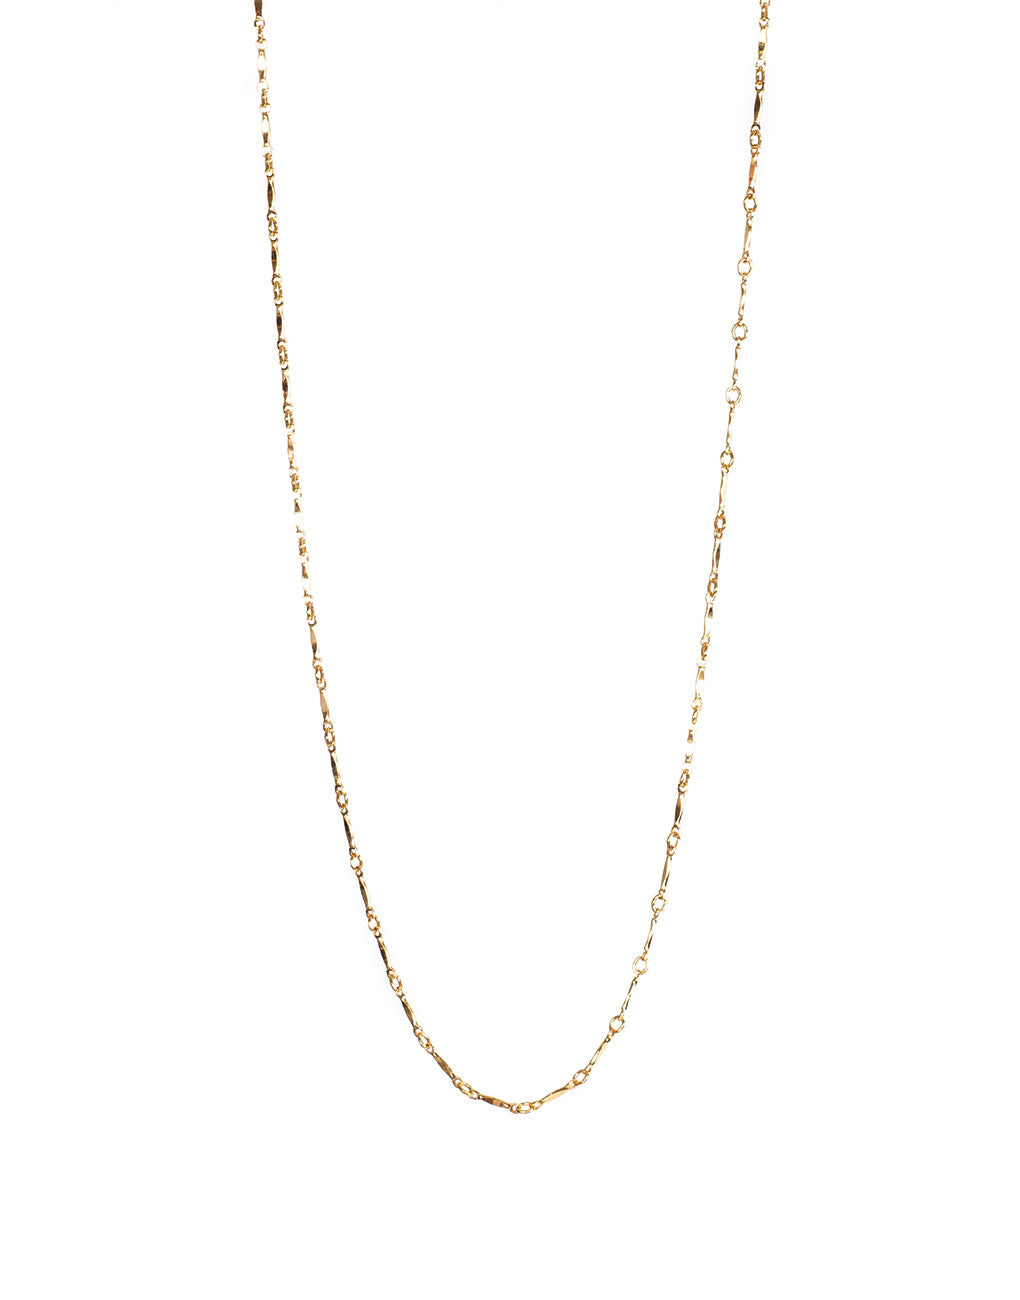 Marquise Chain Necklace | The Little Market